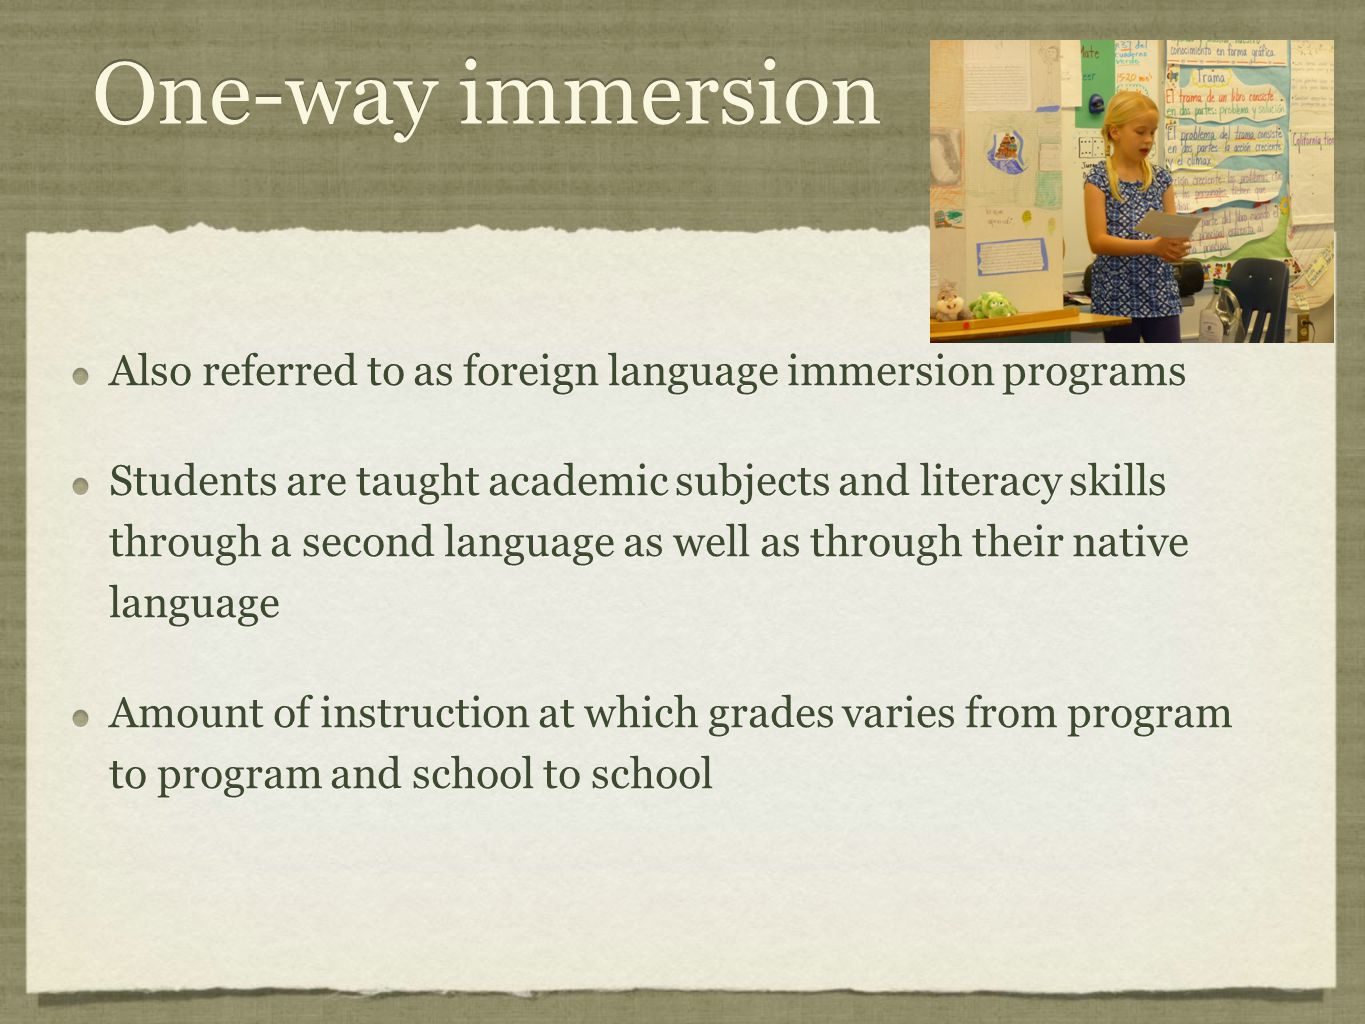 One-way immersion Also referred to as foreign language immersion programs Students are taught academic subjects and literacy skills through a second language as well as through their native language Amount of instruction at which grades varies from program to program and school to school Also referred to as foreign language immersion programs Students are taught academic subjects and literacy skills through a second language as well as through their native language Amount of instruction at which grades varies from program to program and school to school